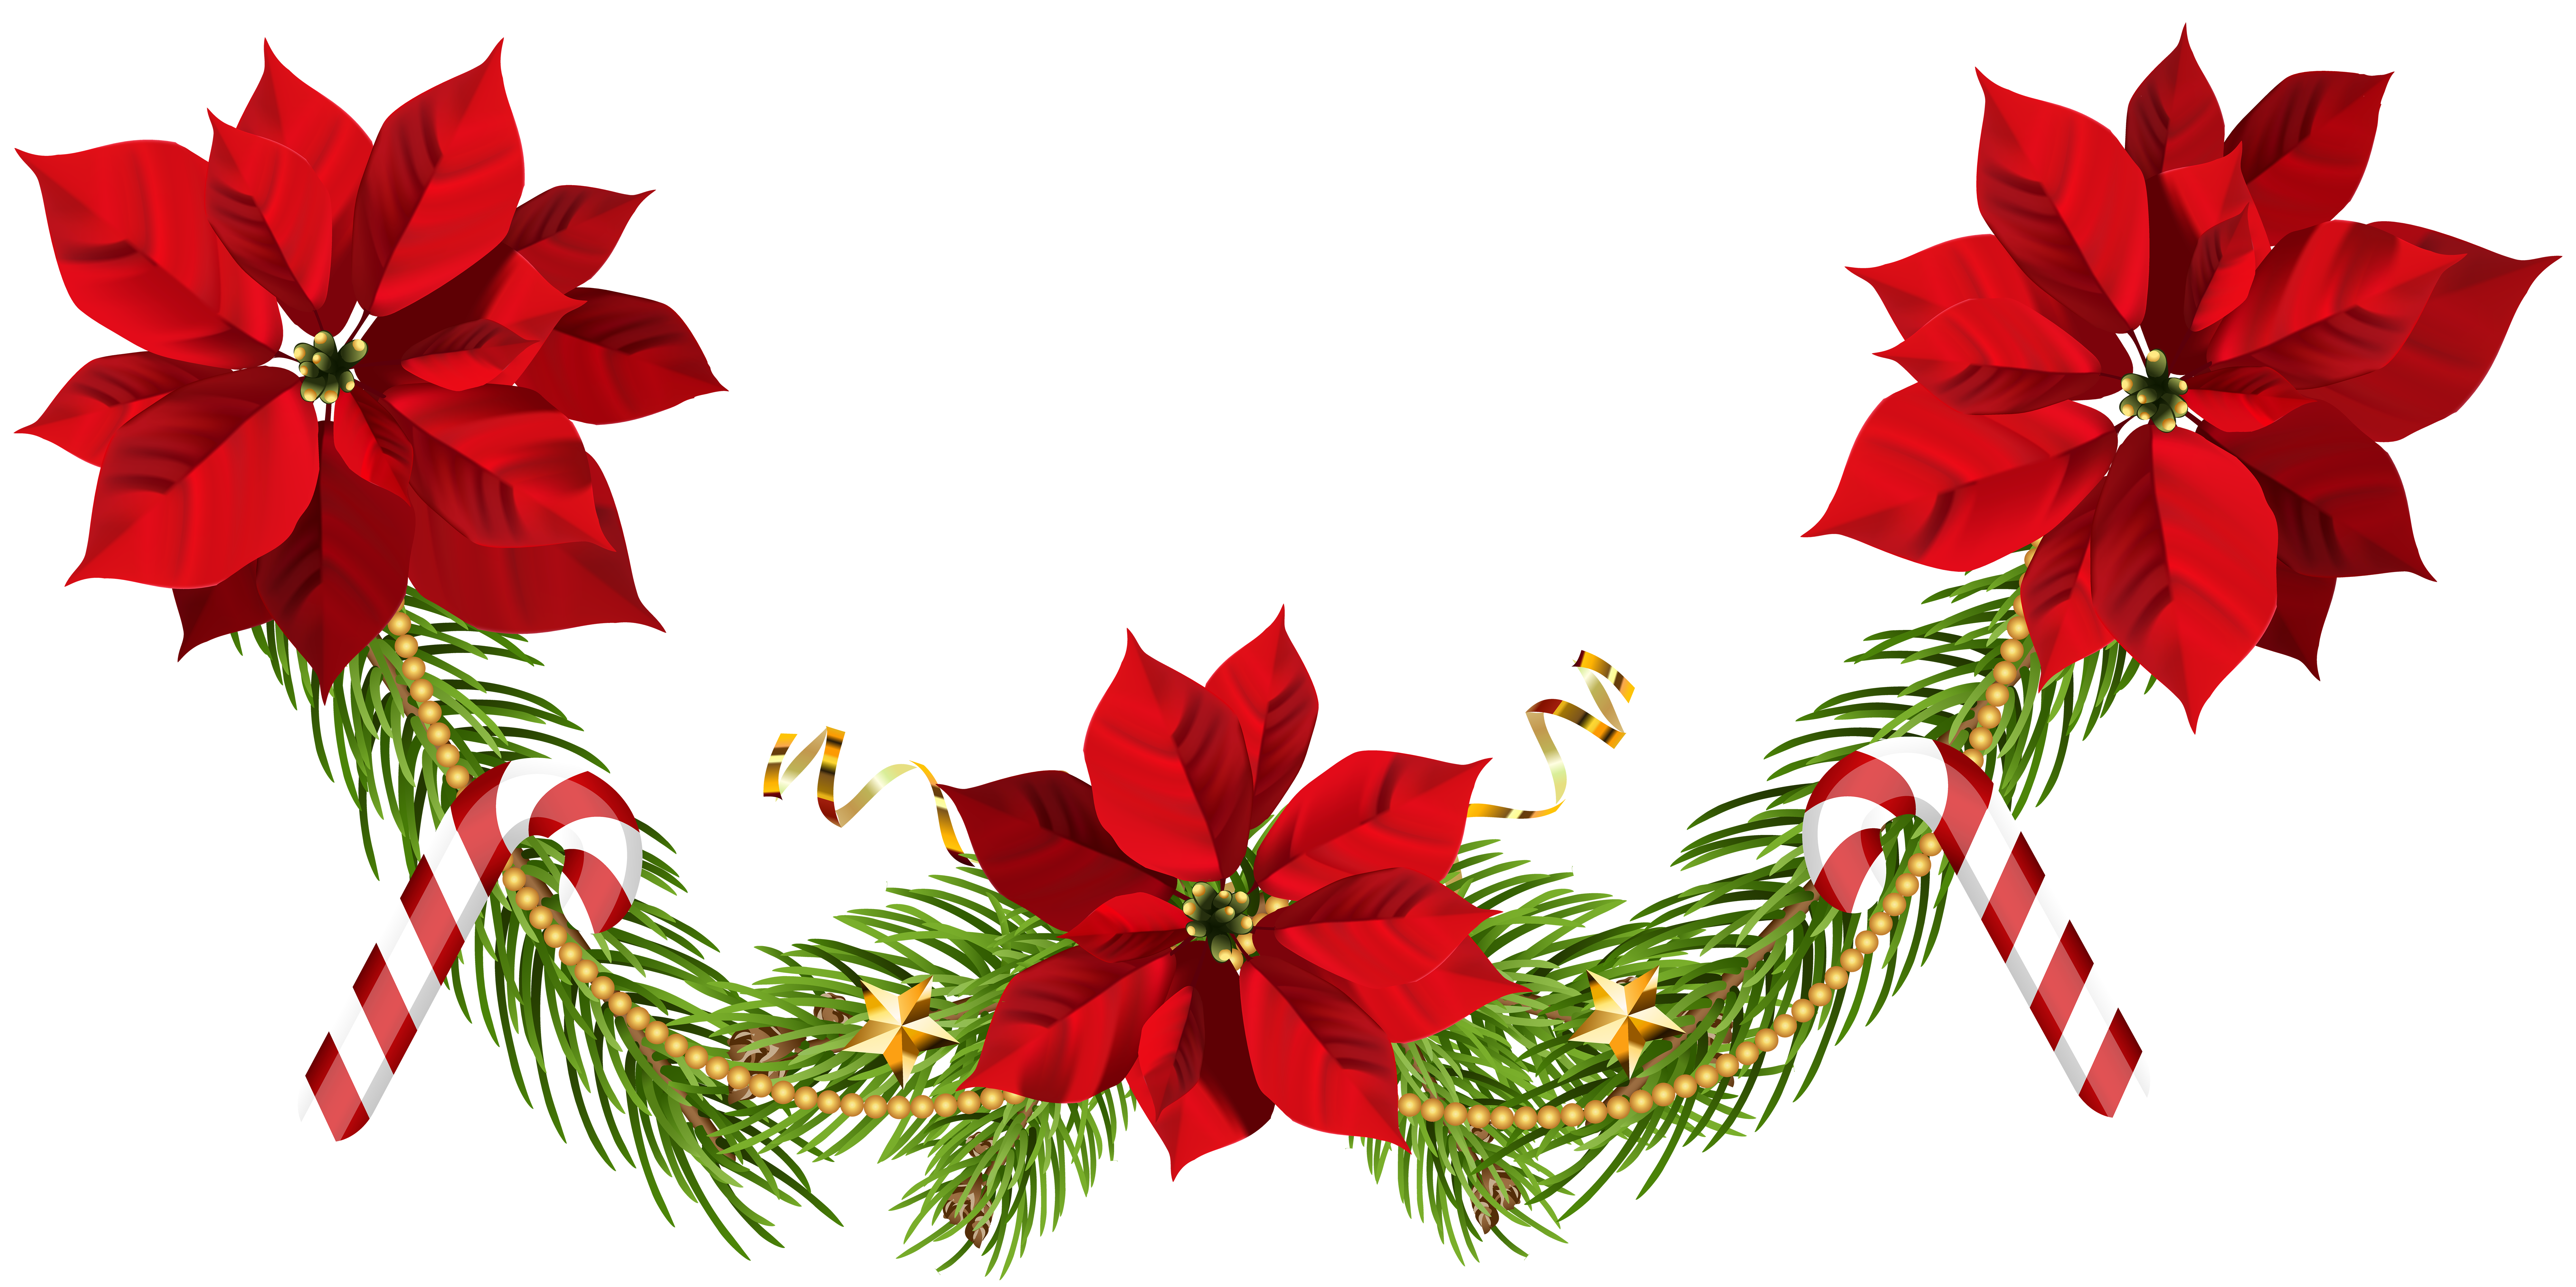 Poinsettia Garland Png - Christmas Poinsettias Garland Clip Art PNG Image | Gallery ...